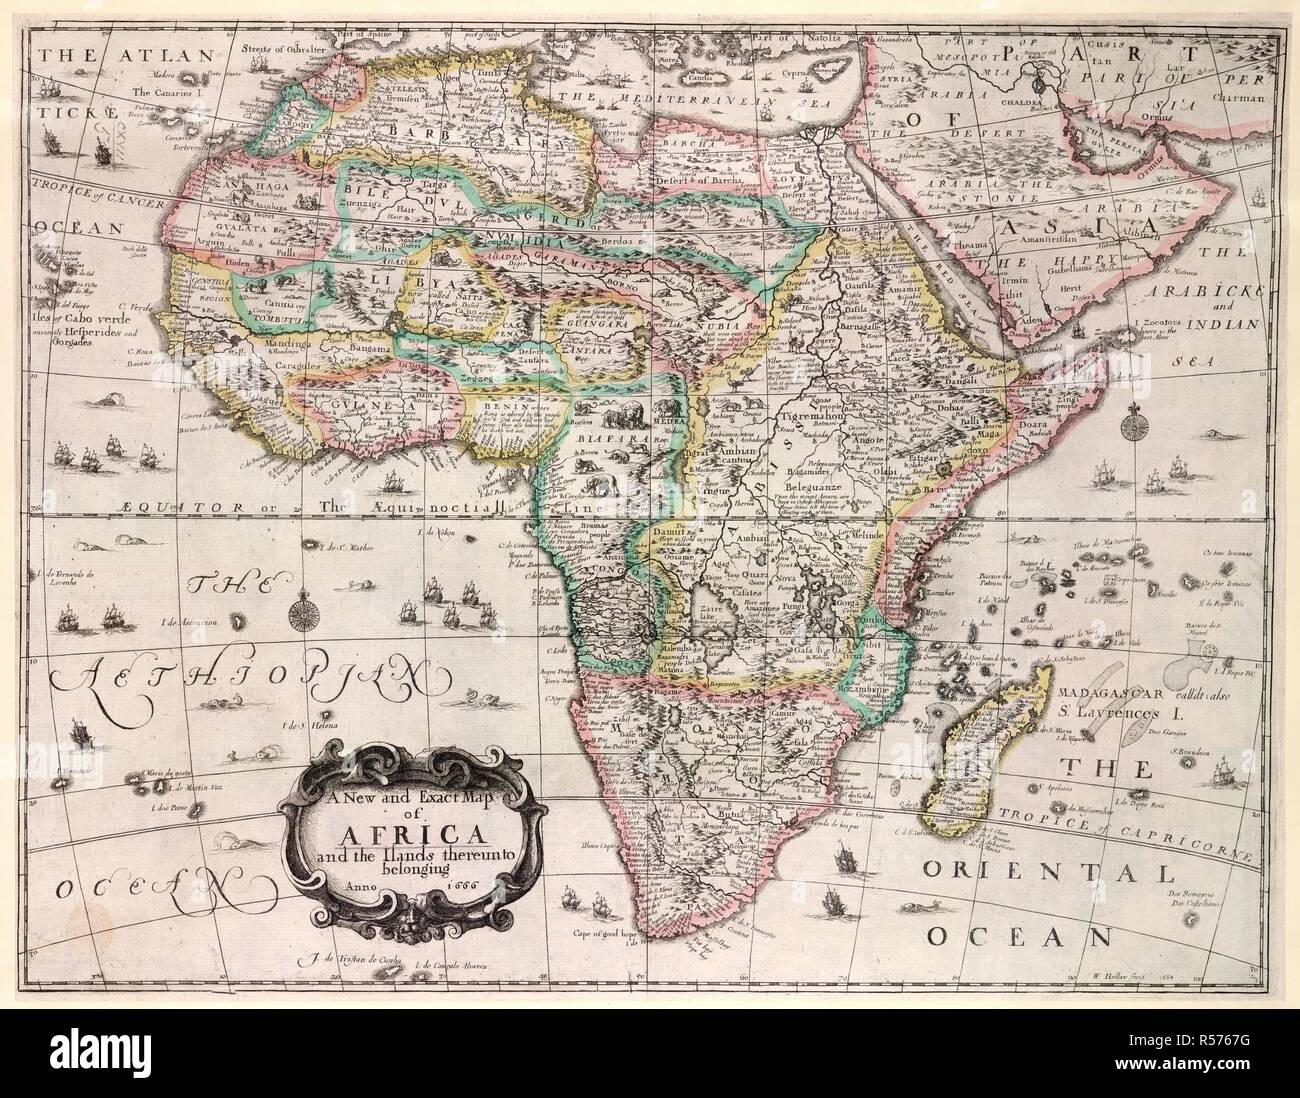 A map of Africa and the islands. A new and exact Map of Africa and K Nd New Map on ca map, w.va map, al map, efis map, ne map, wa map, eastern oh map, nv map, ohio map, mn map, nh map, md map, ks map, time zone map, co map, ae map, wy map, mo map, ri map, sd map,